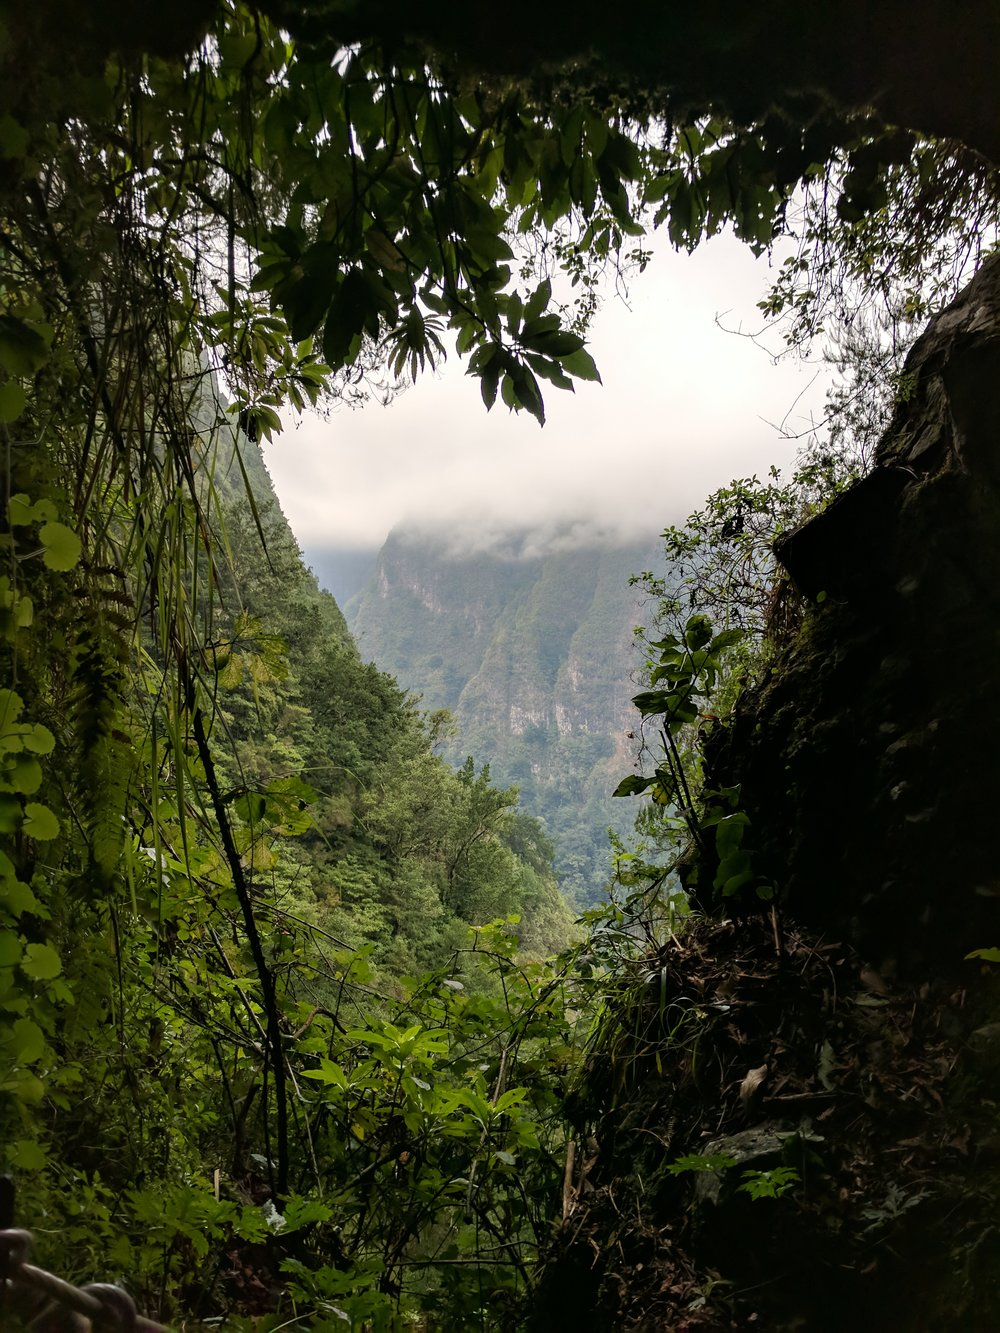 View from The Green Lagoon, a levada on the island (photograph by me)